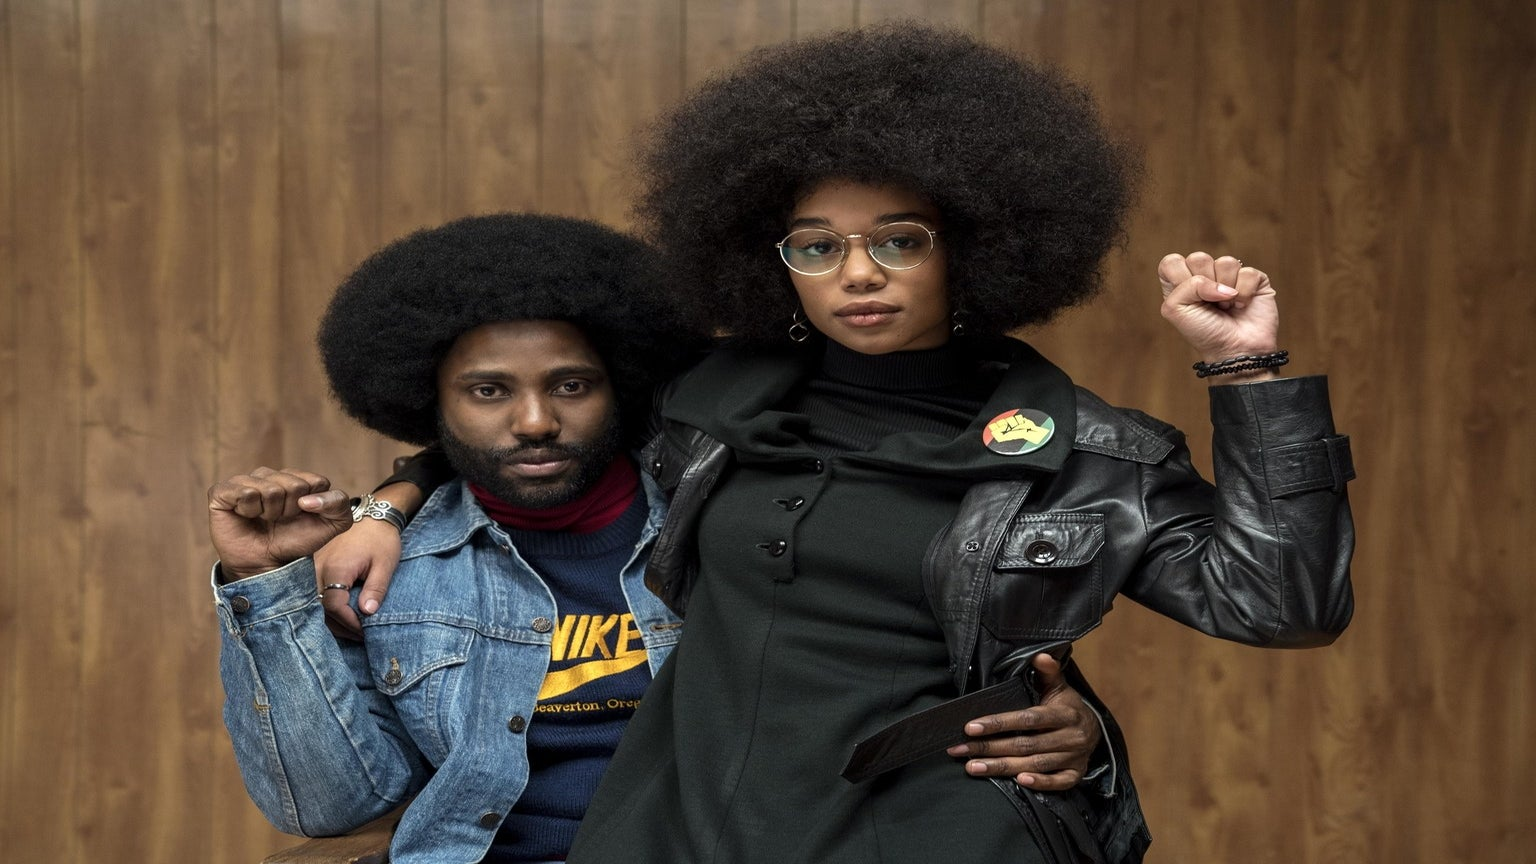 Cast of Spike Lee's 'BlacKkKlansman' Shares How KKK 'Put A Different Face On Racism'